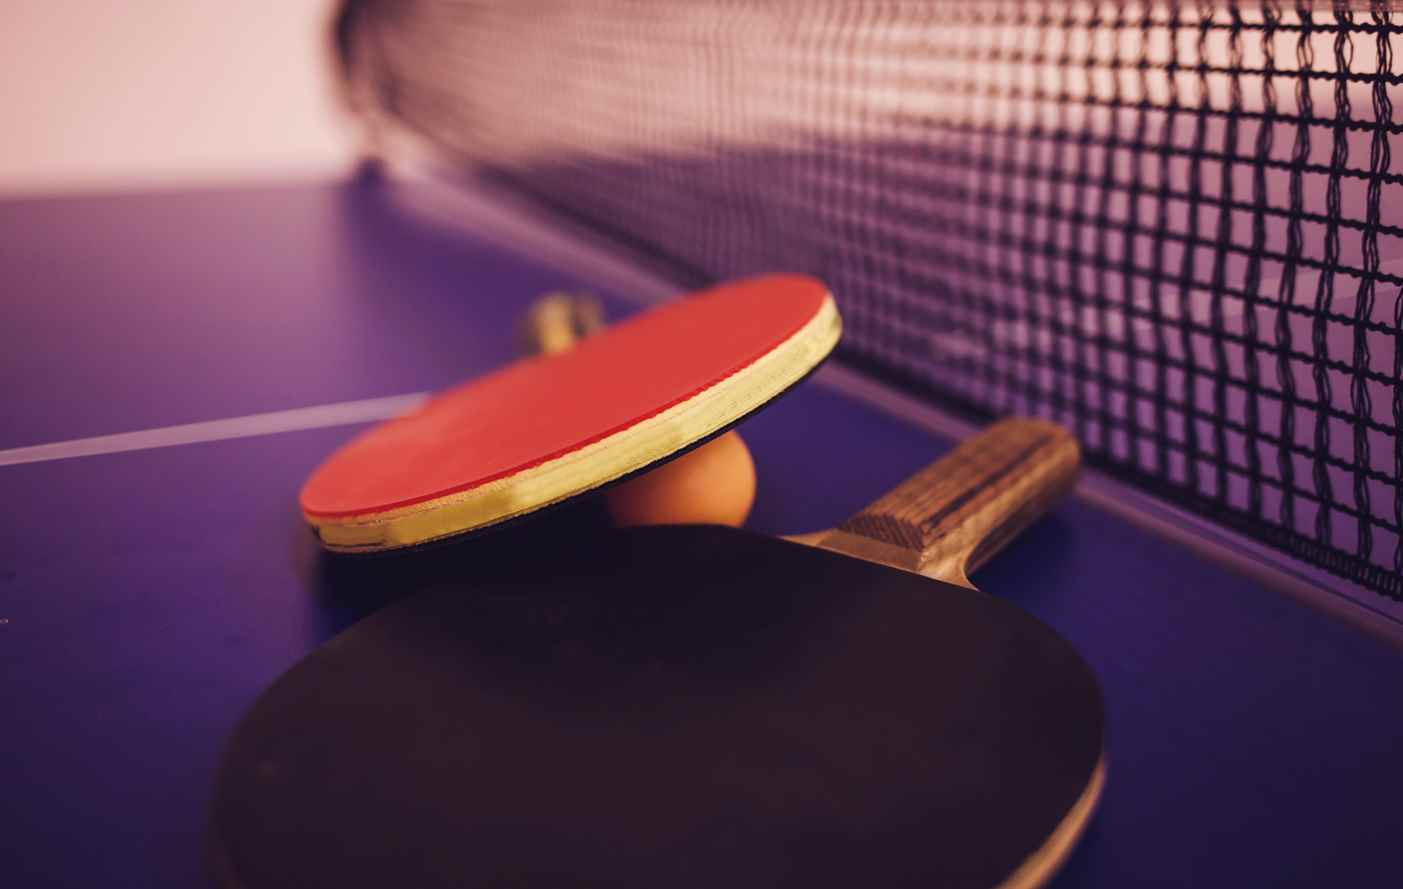 How To Effectively Clean Your Table Tennis Paddle